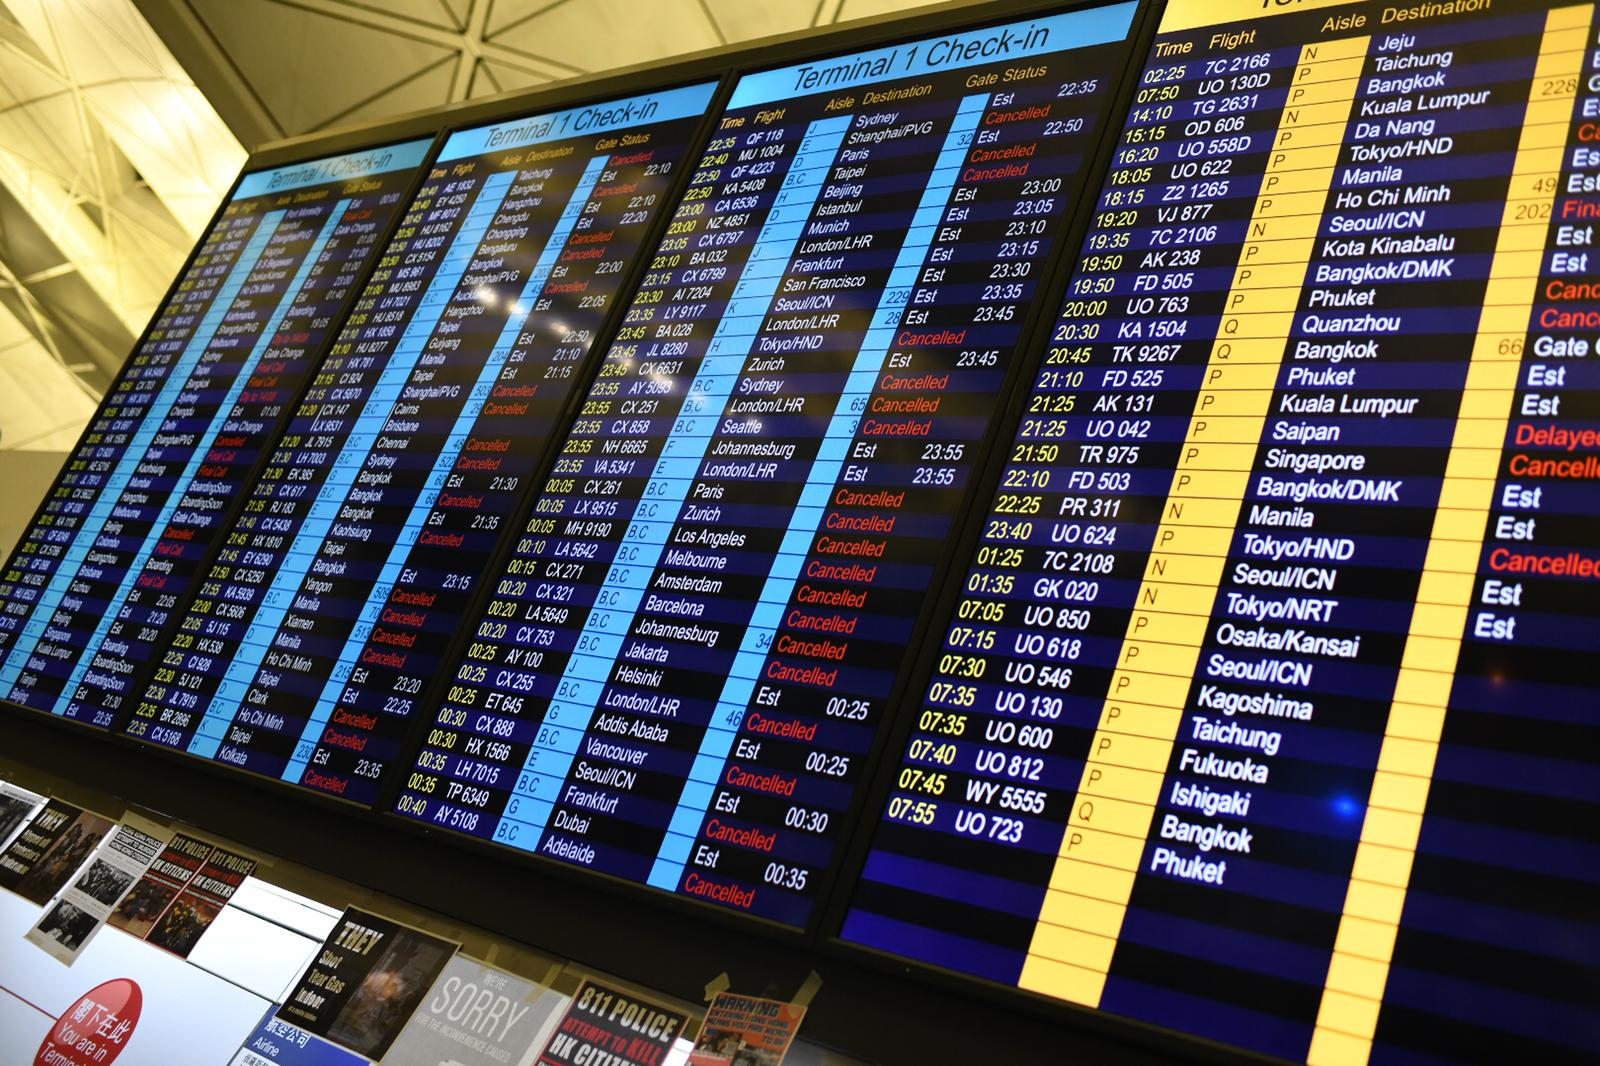 Check-in boards showing canceled flights at Hong Kong airport on August 13, 2019.